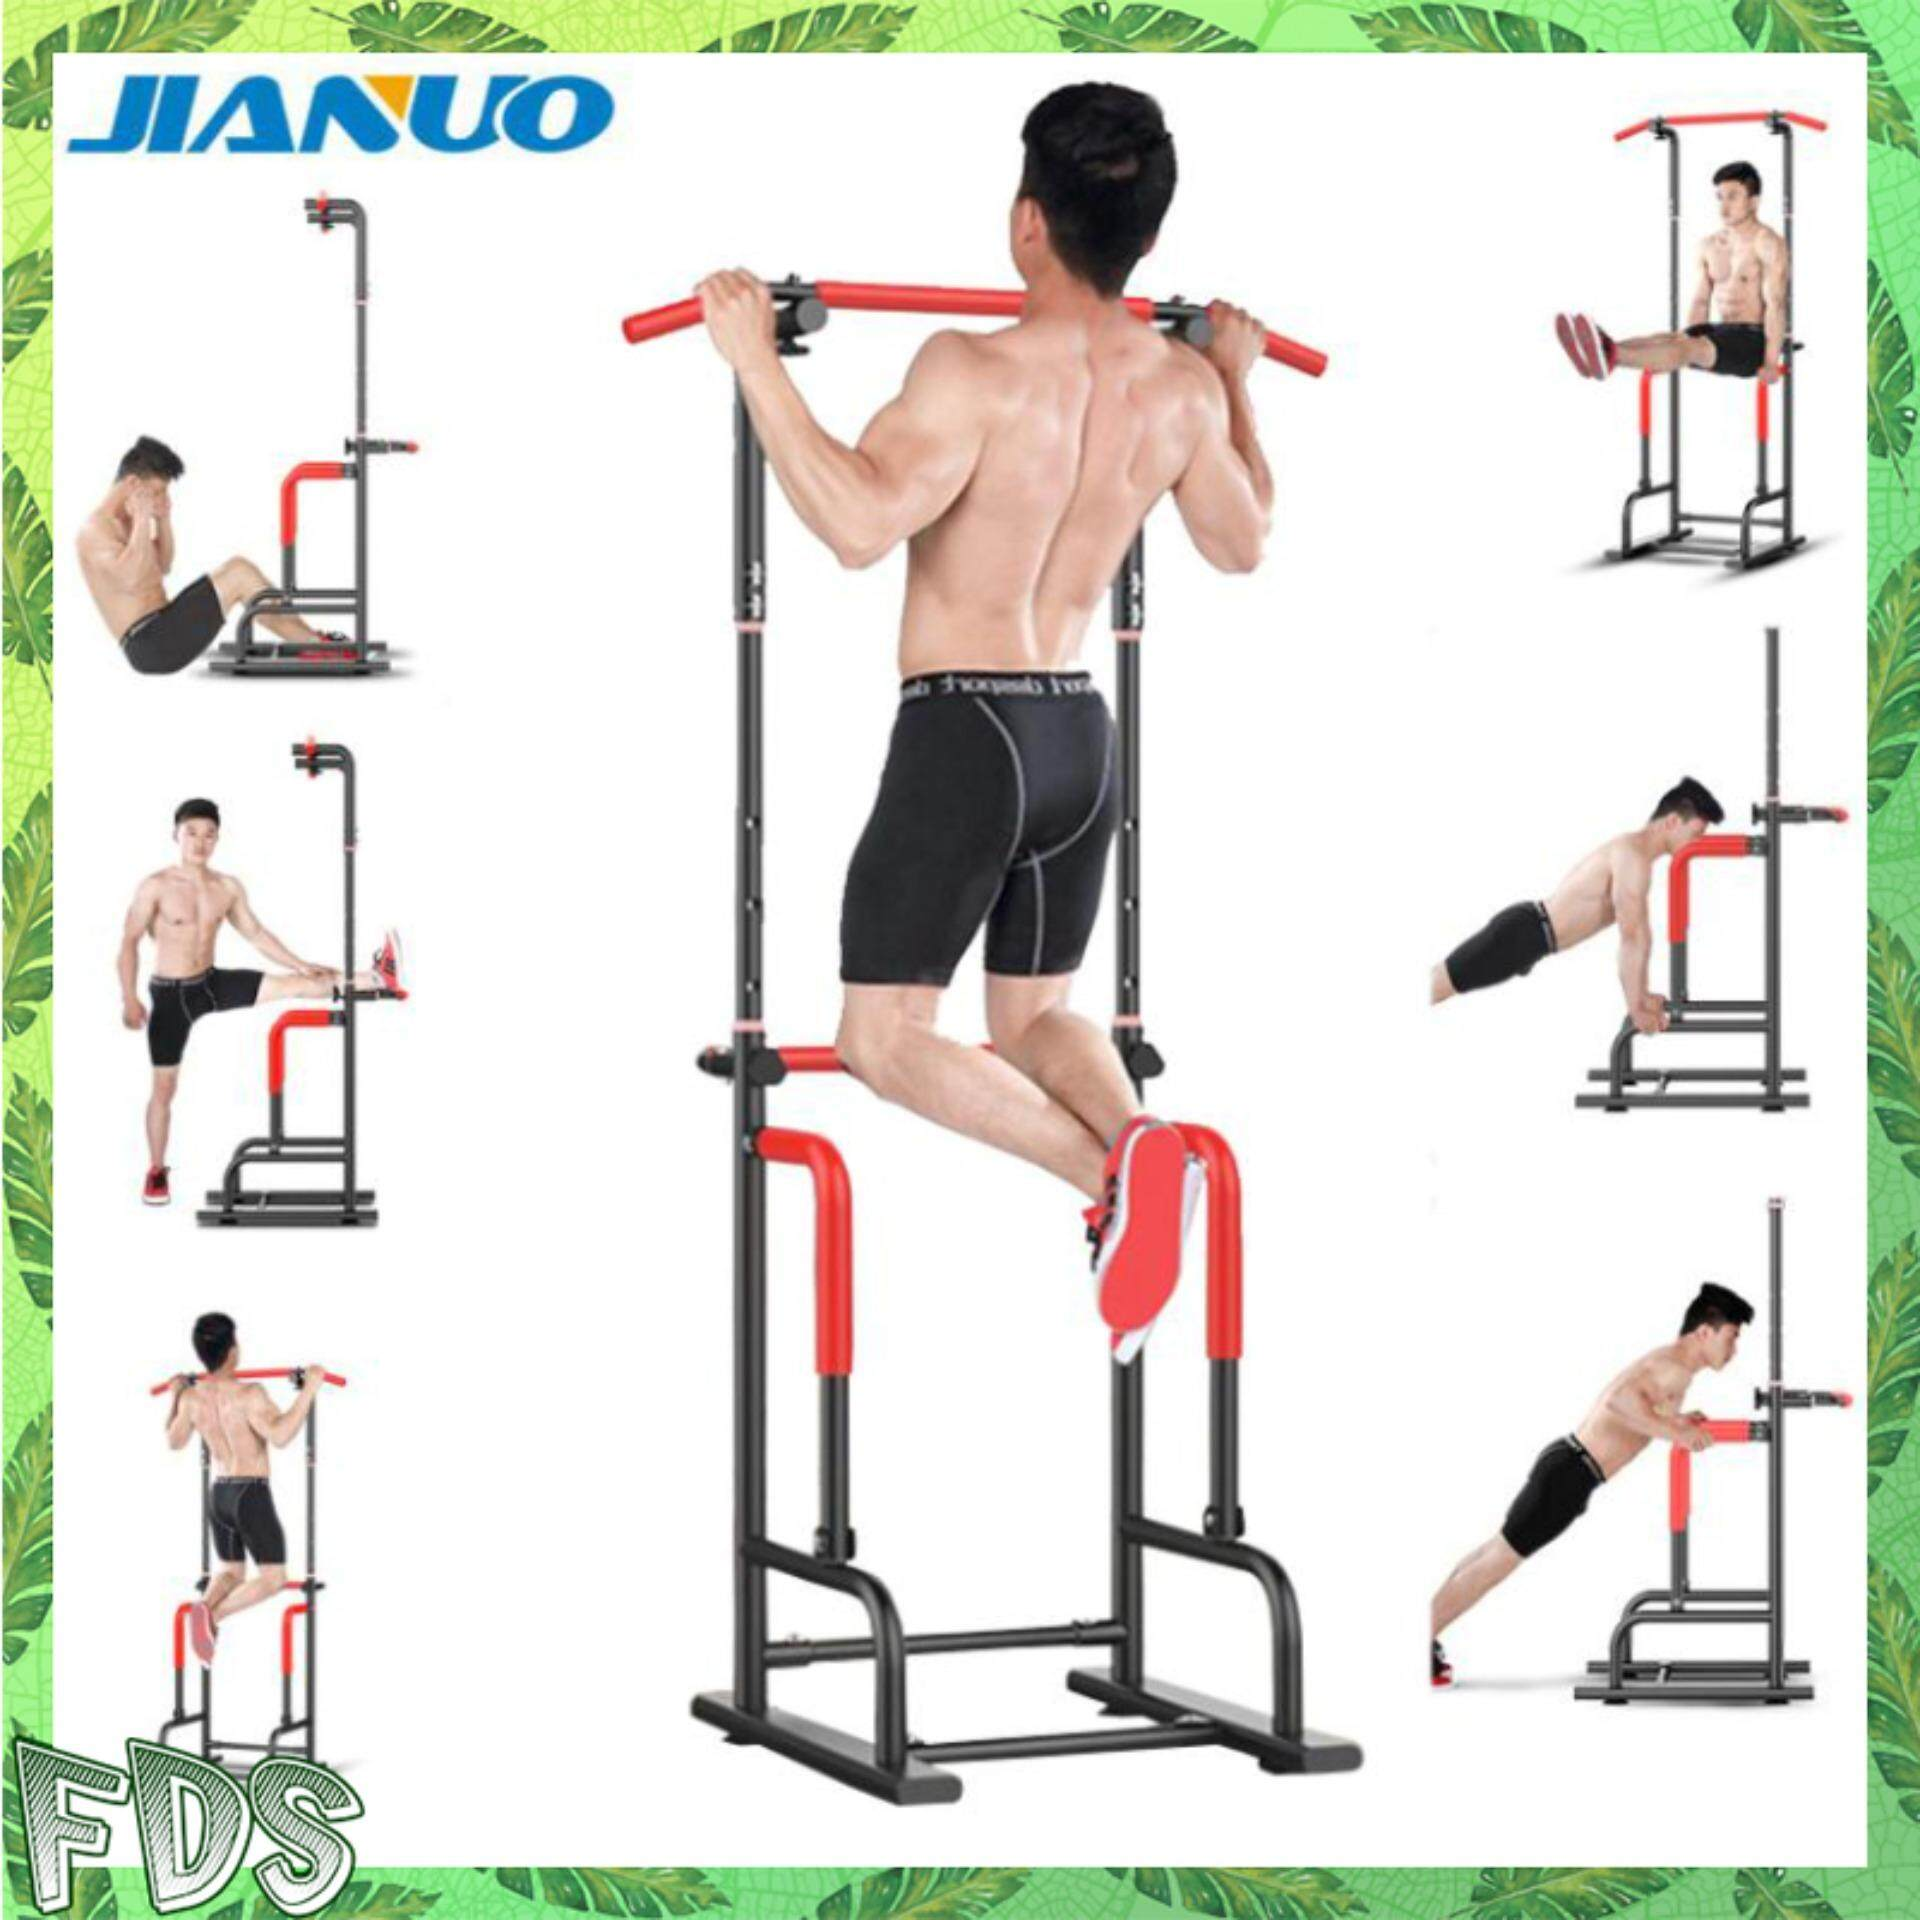 JIANUO JN-YT18 Home Gym Fitness Workout Dip Chin Up and Pull Up  Multi-Function Exercise Tower Station Equipment For Kids or Adults